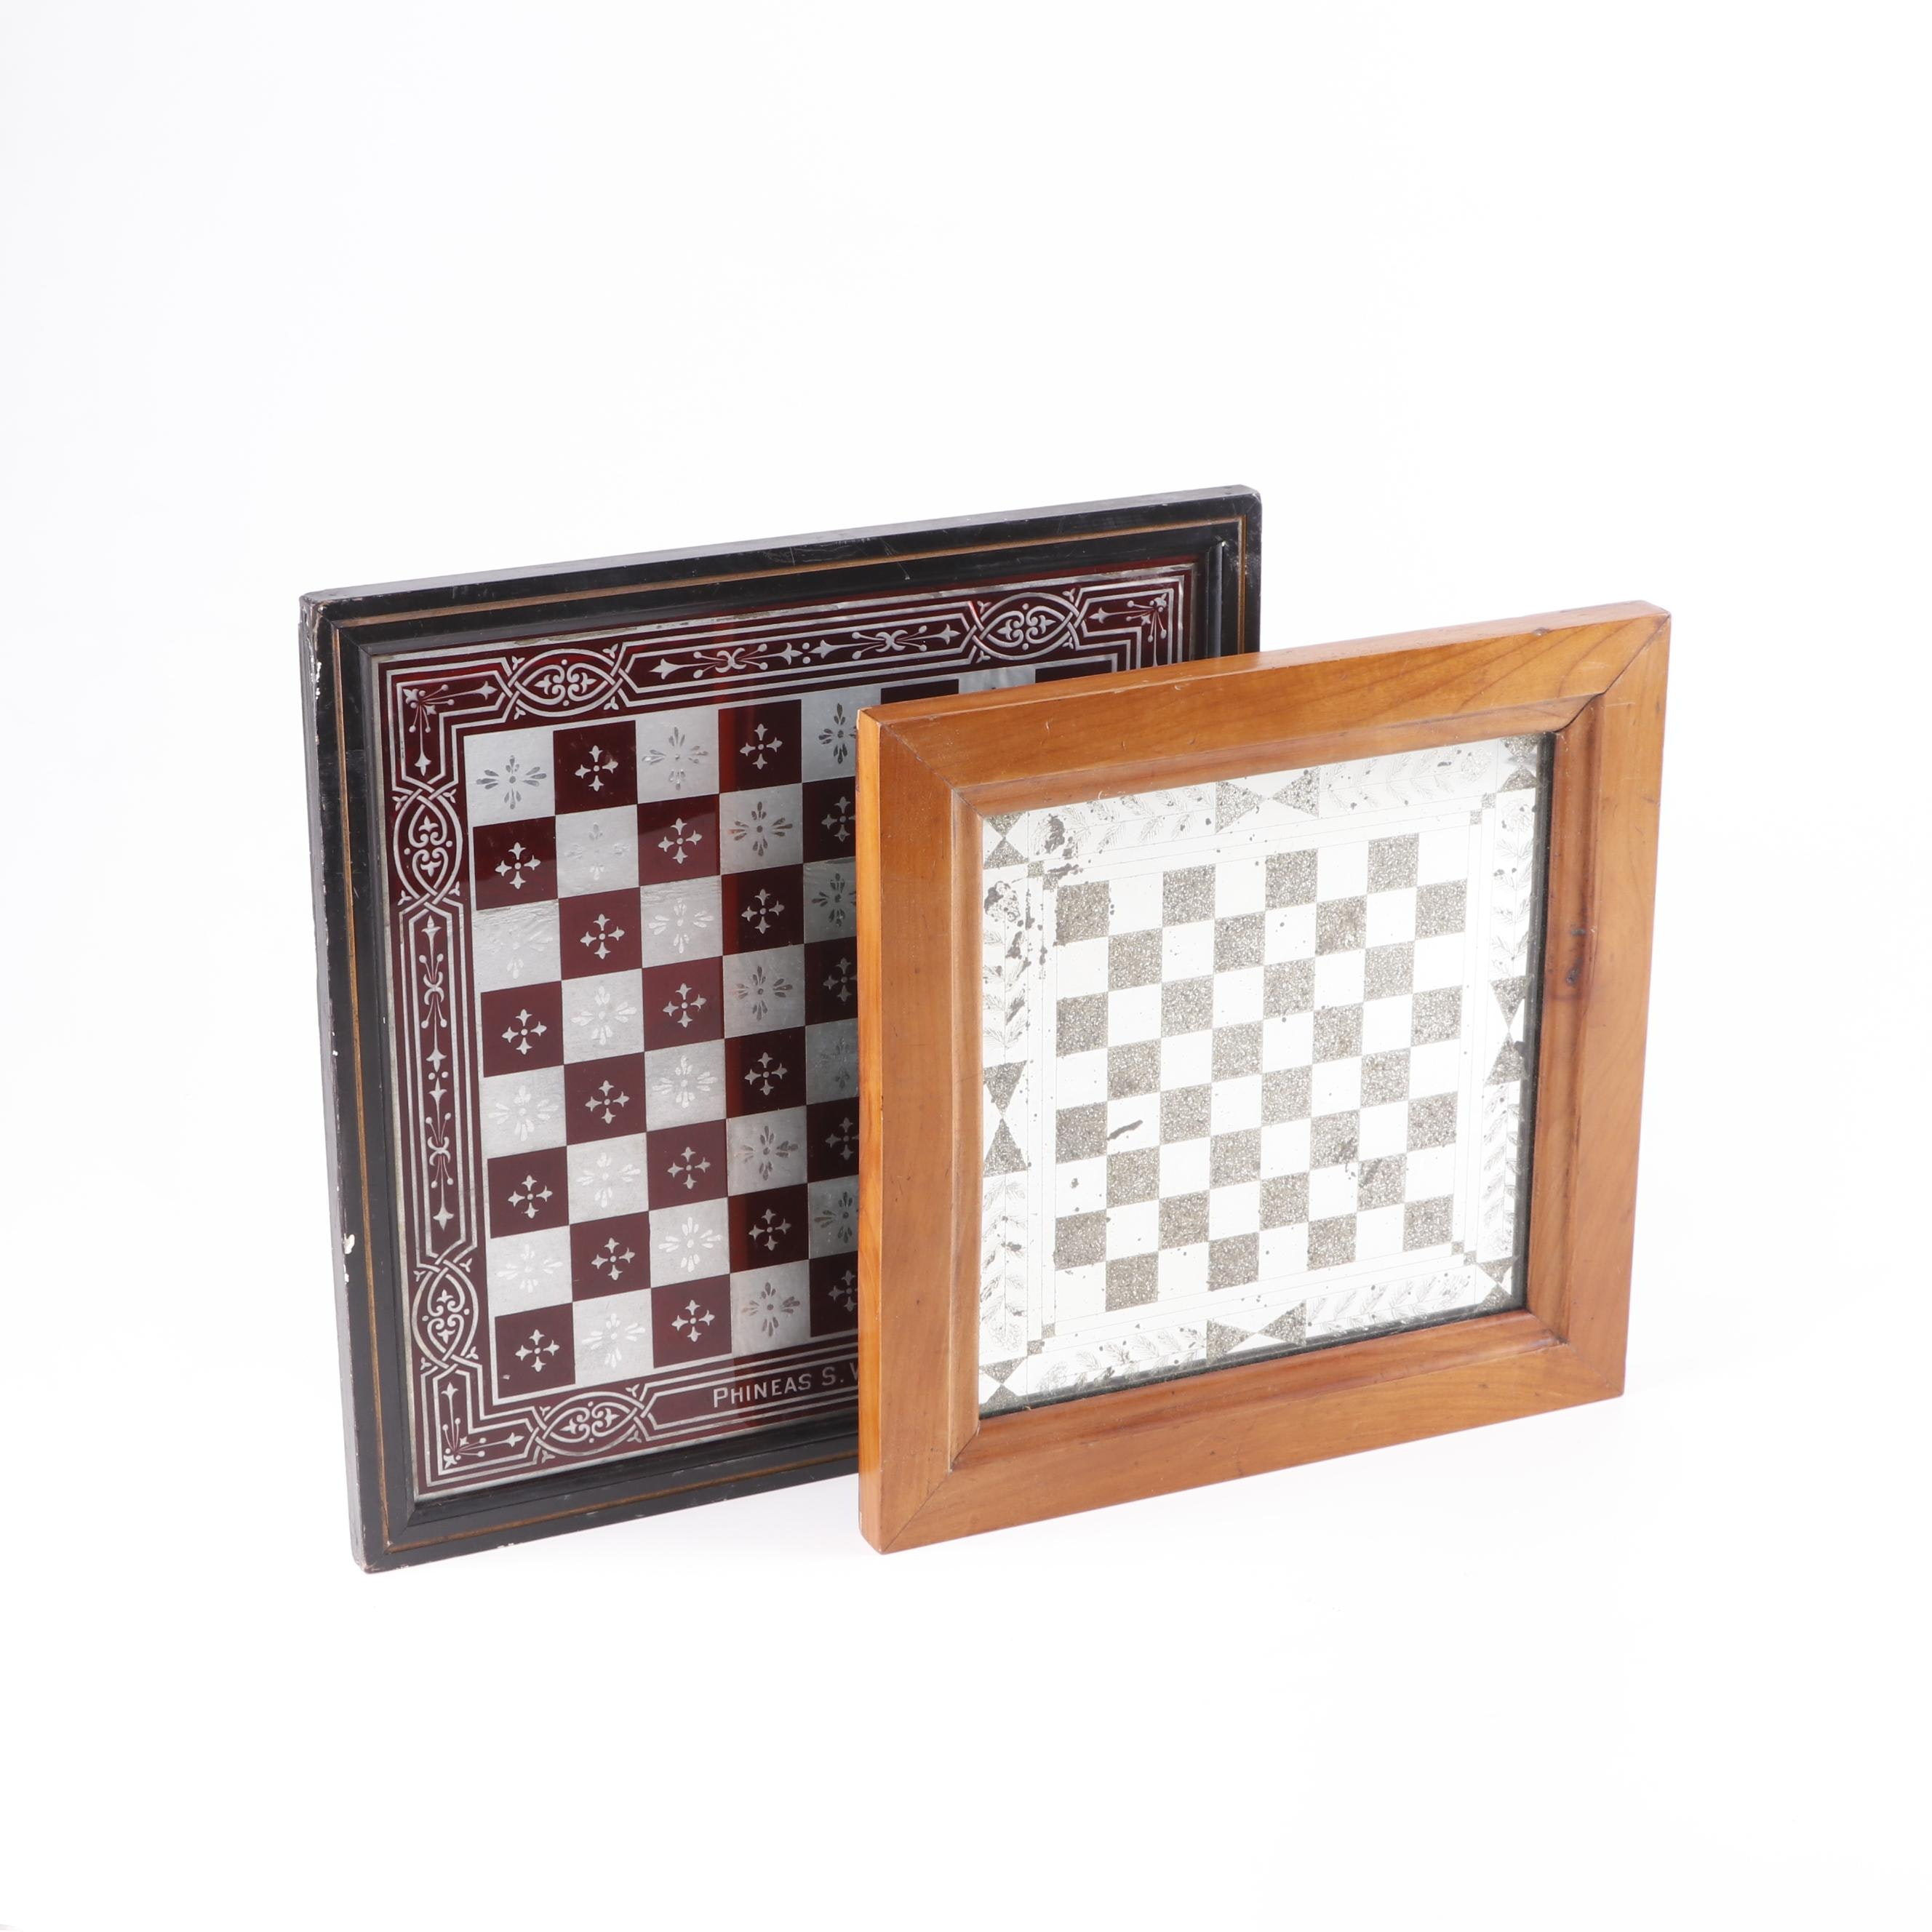 Chess Boards including Phineas S. Wood